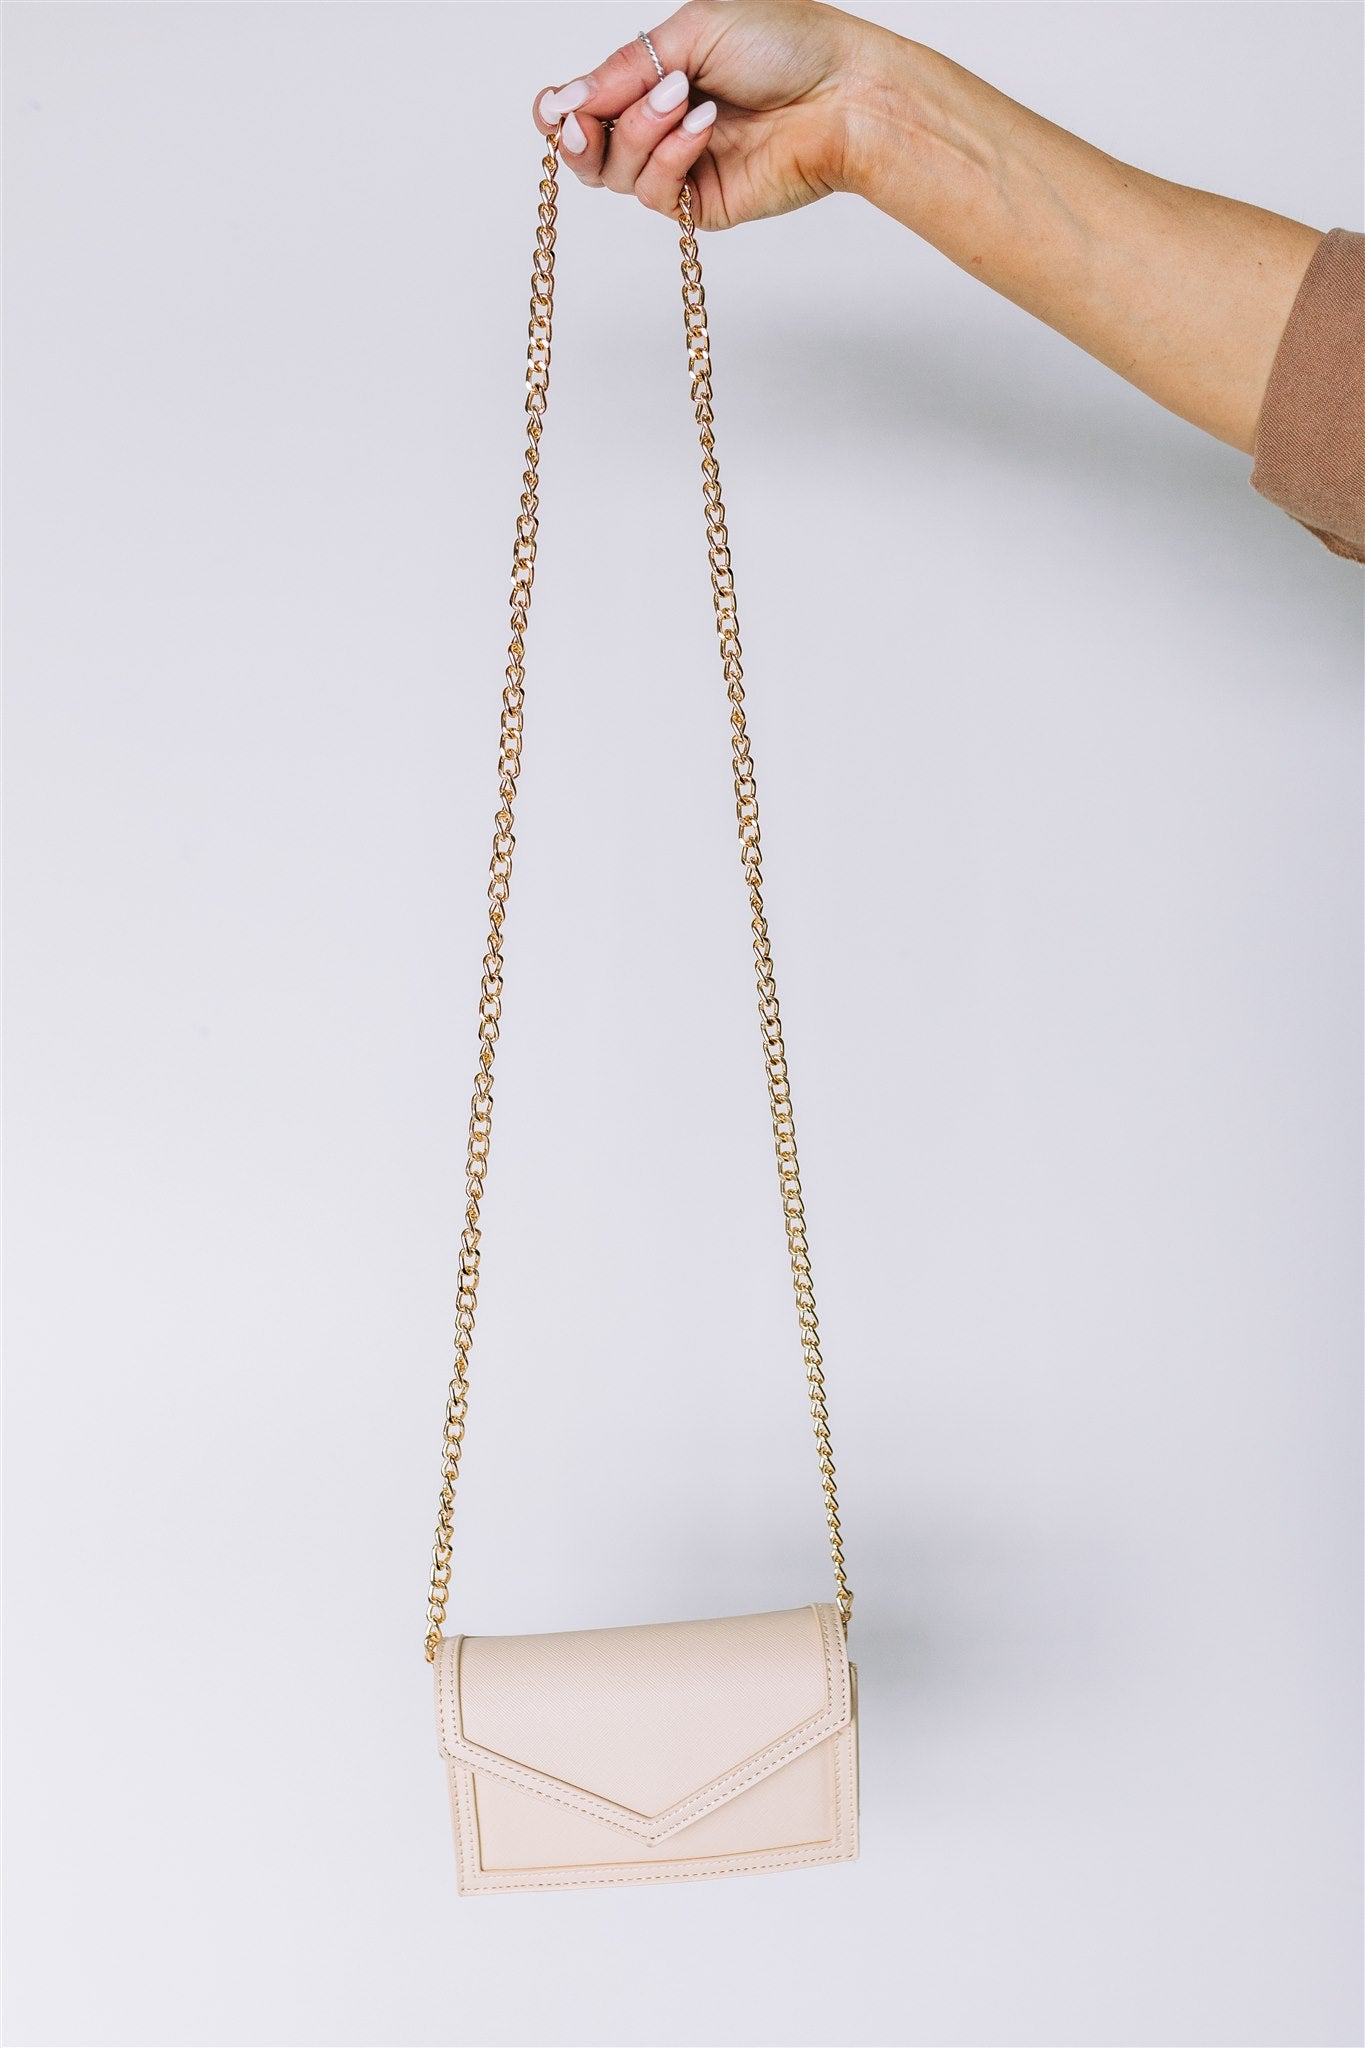 The Essentials Leather Mini Bag - Nude